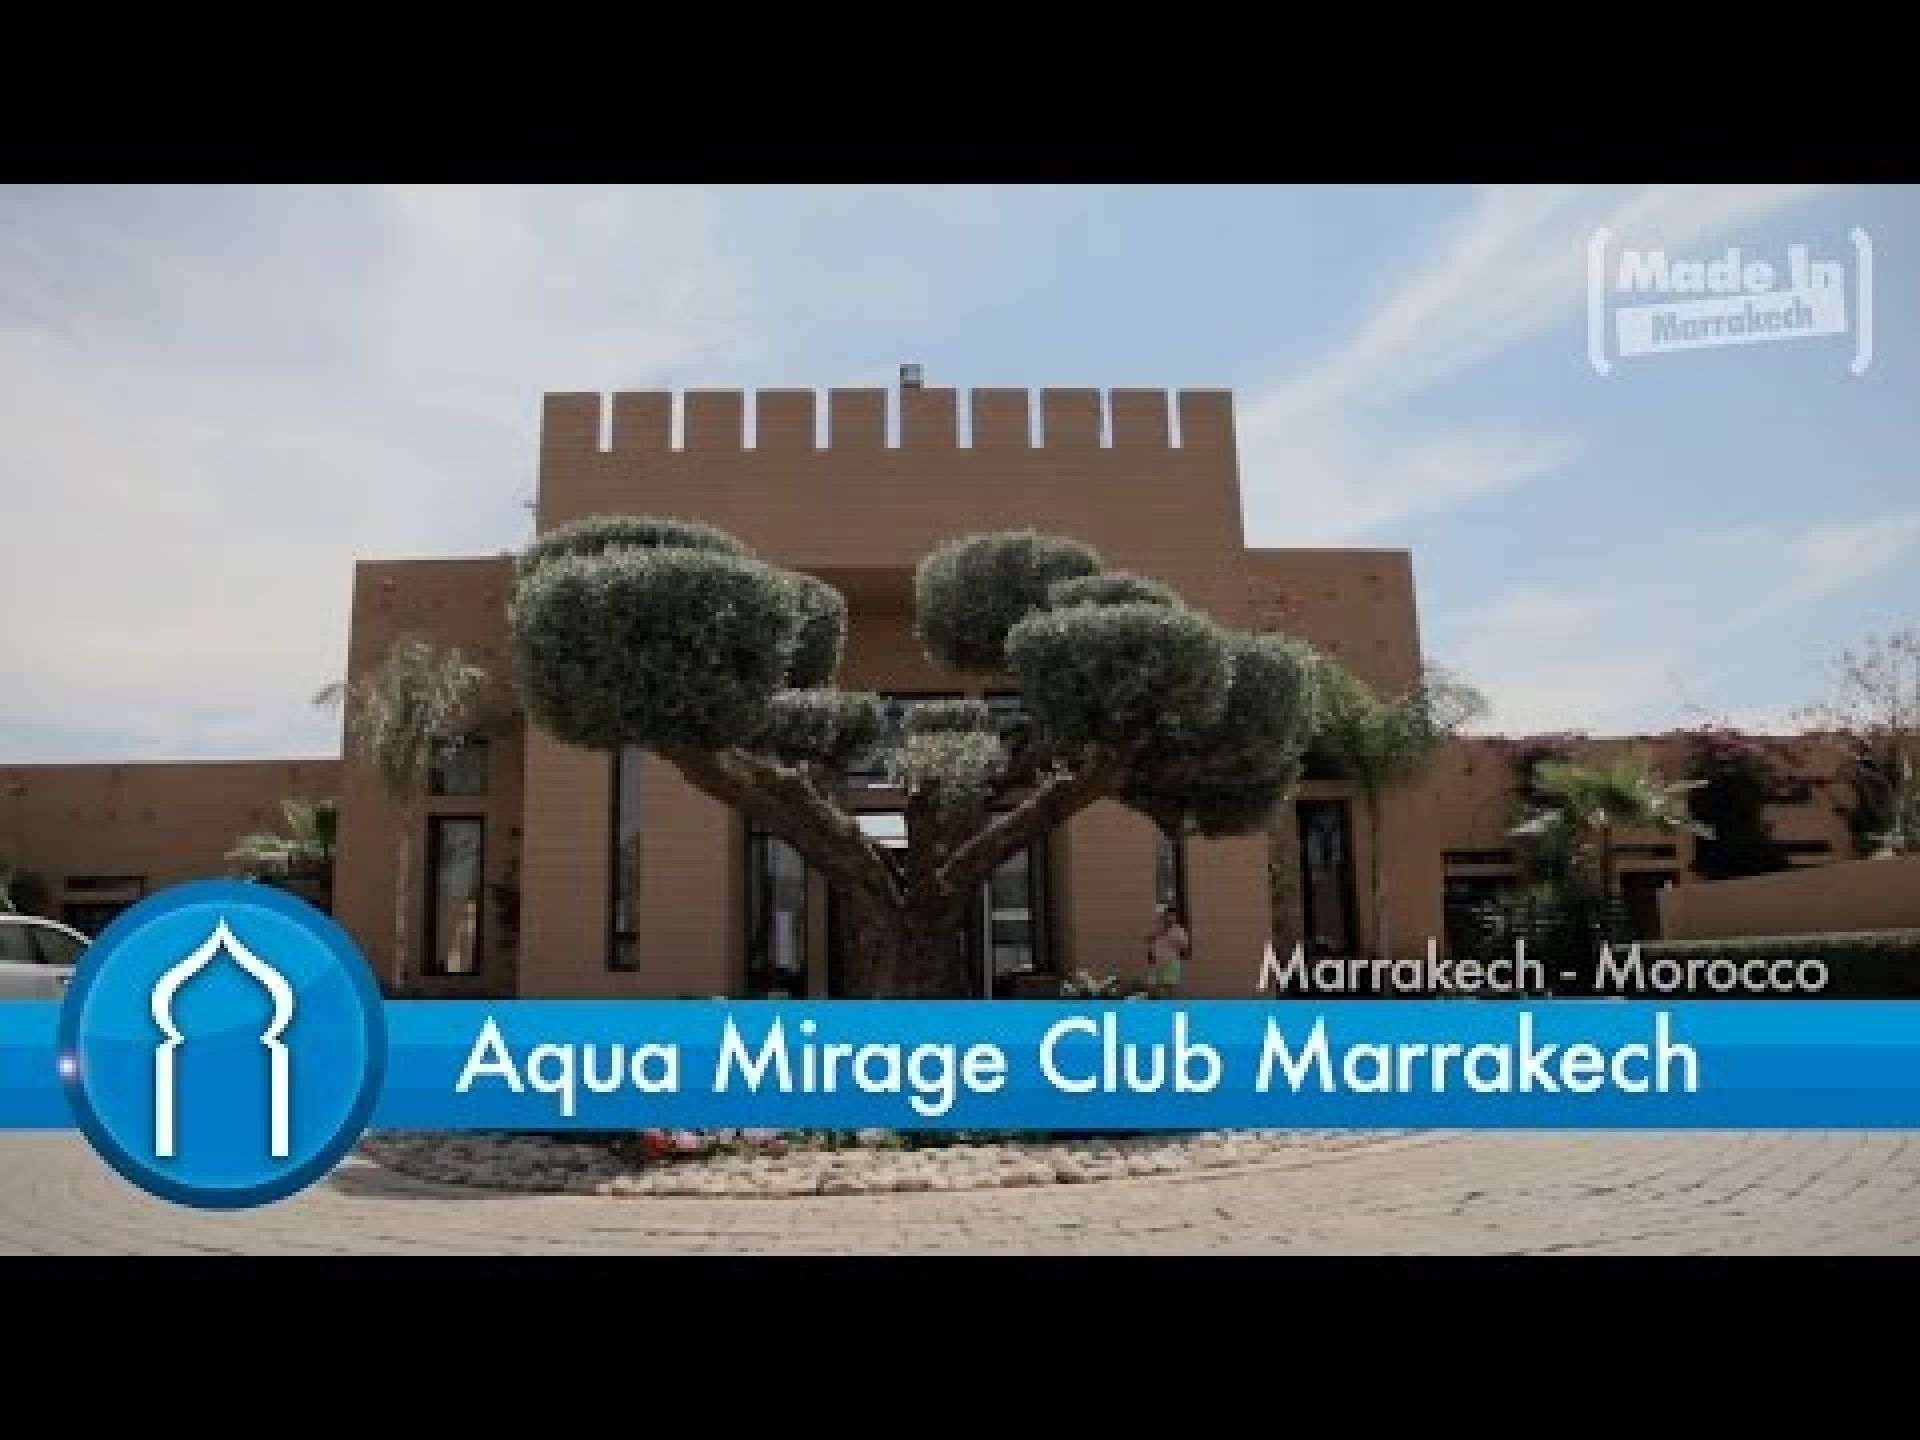 Aqua Mirage Club Marrakech By Made in Marrakech